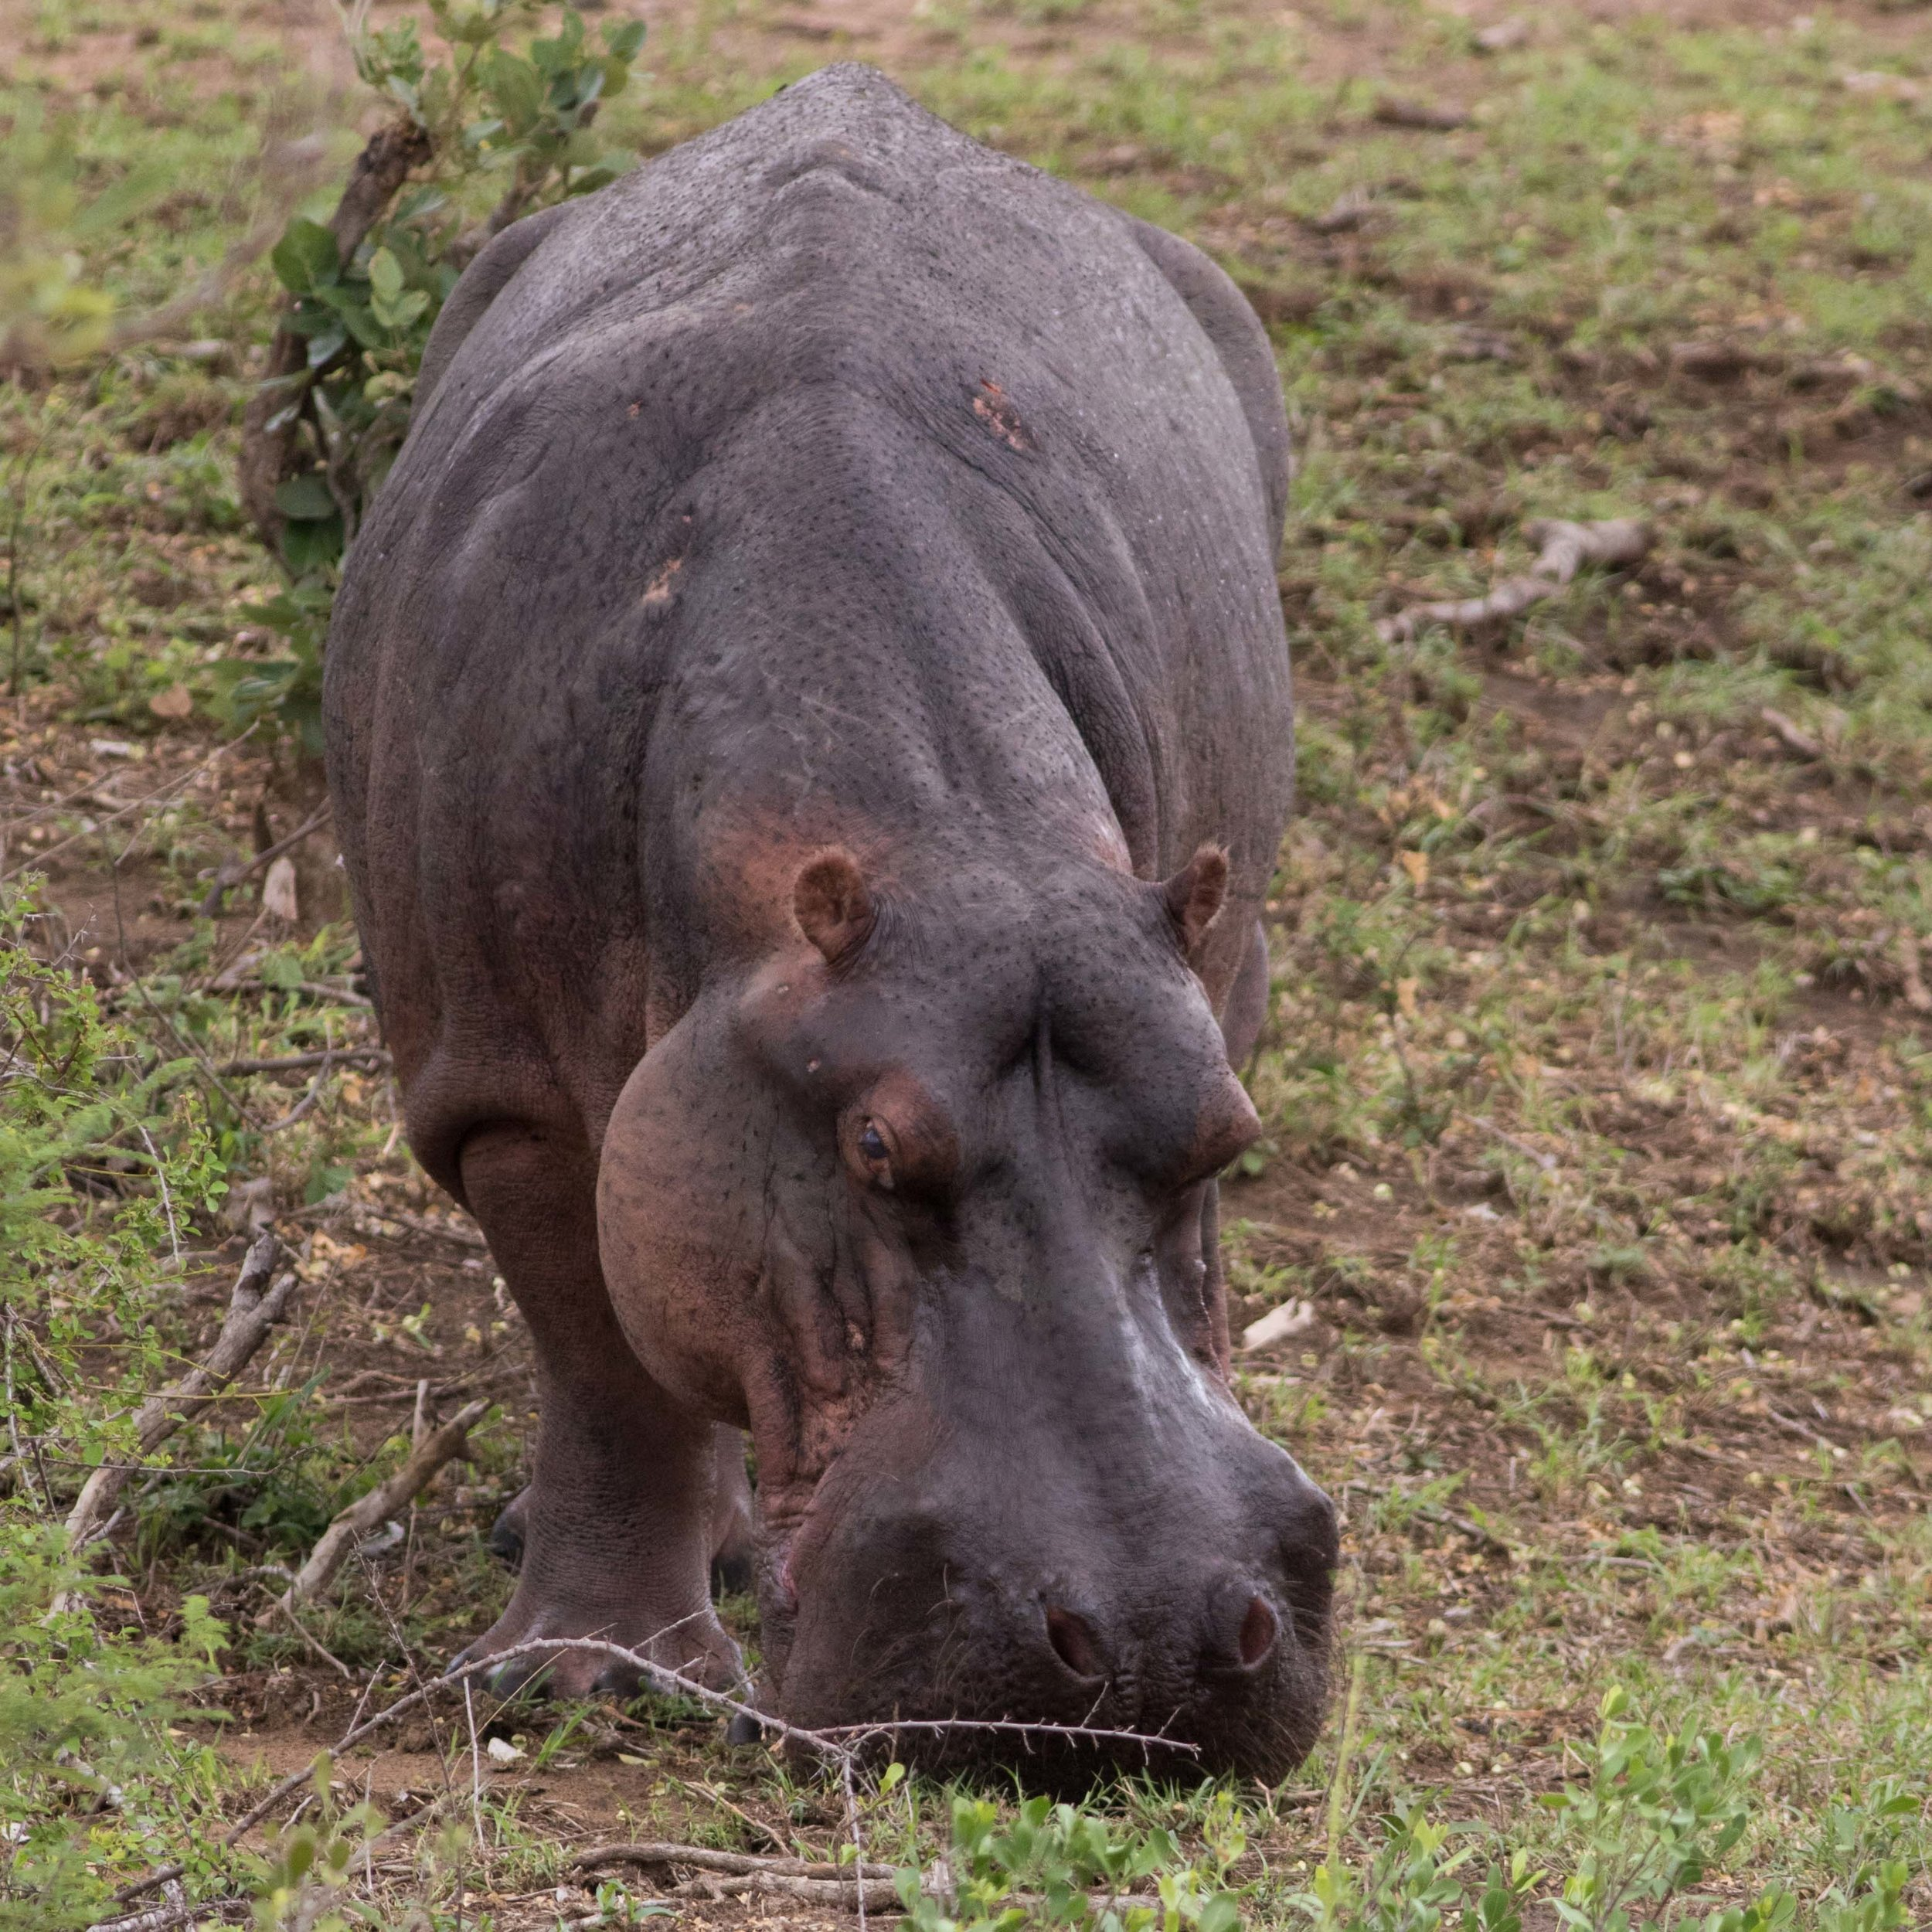 An adult hippopotamus ventures away from the safety of water to forage during an overcast day.